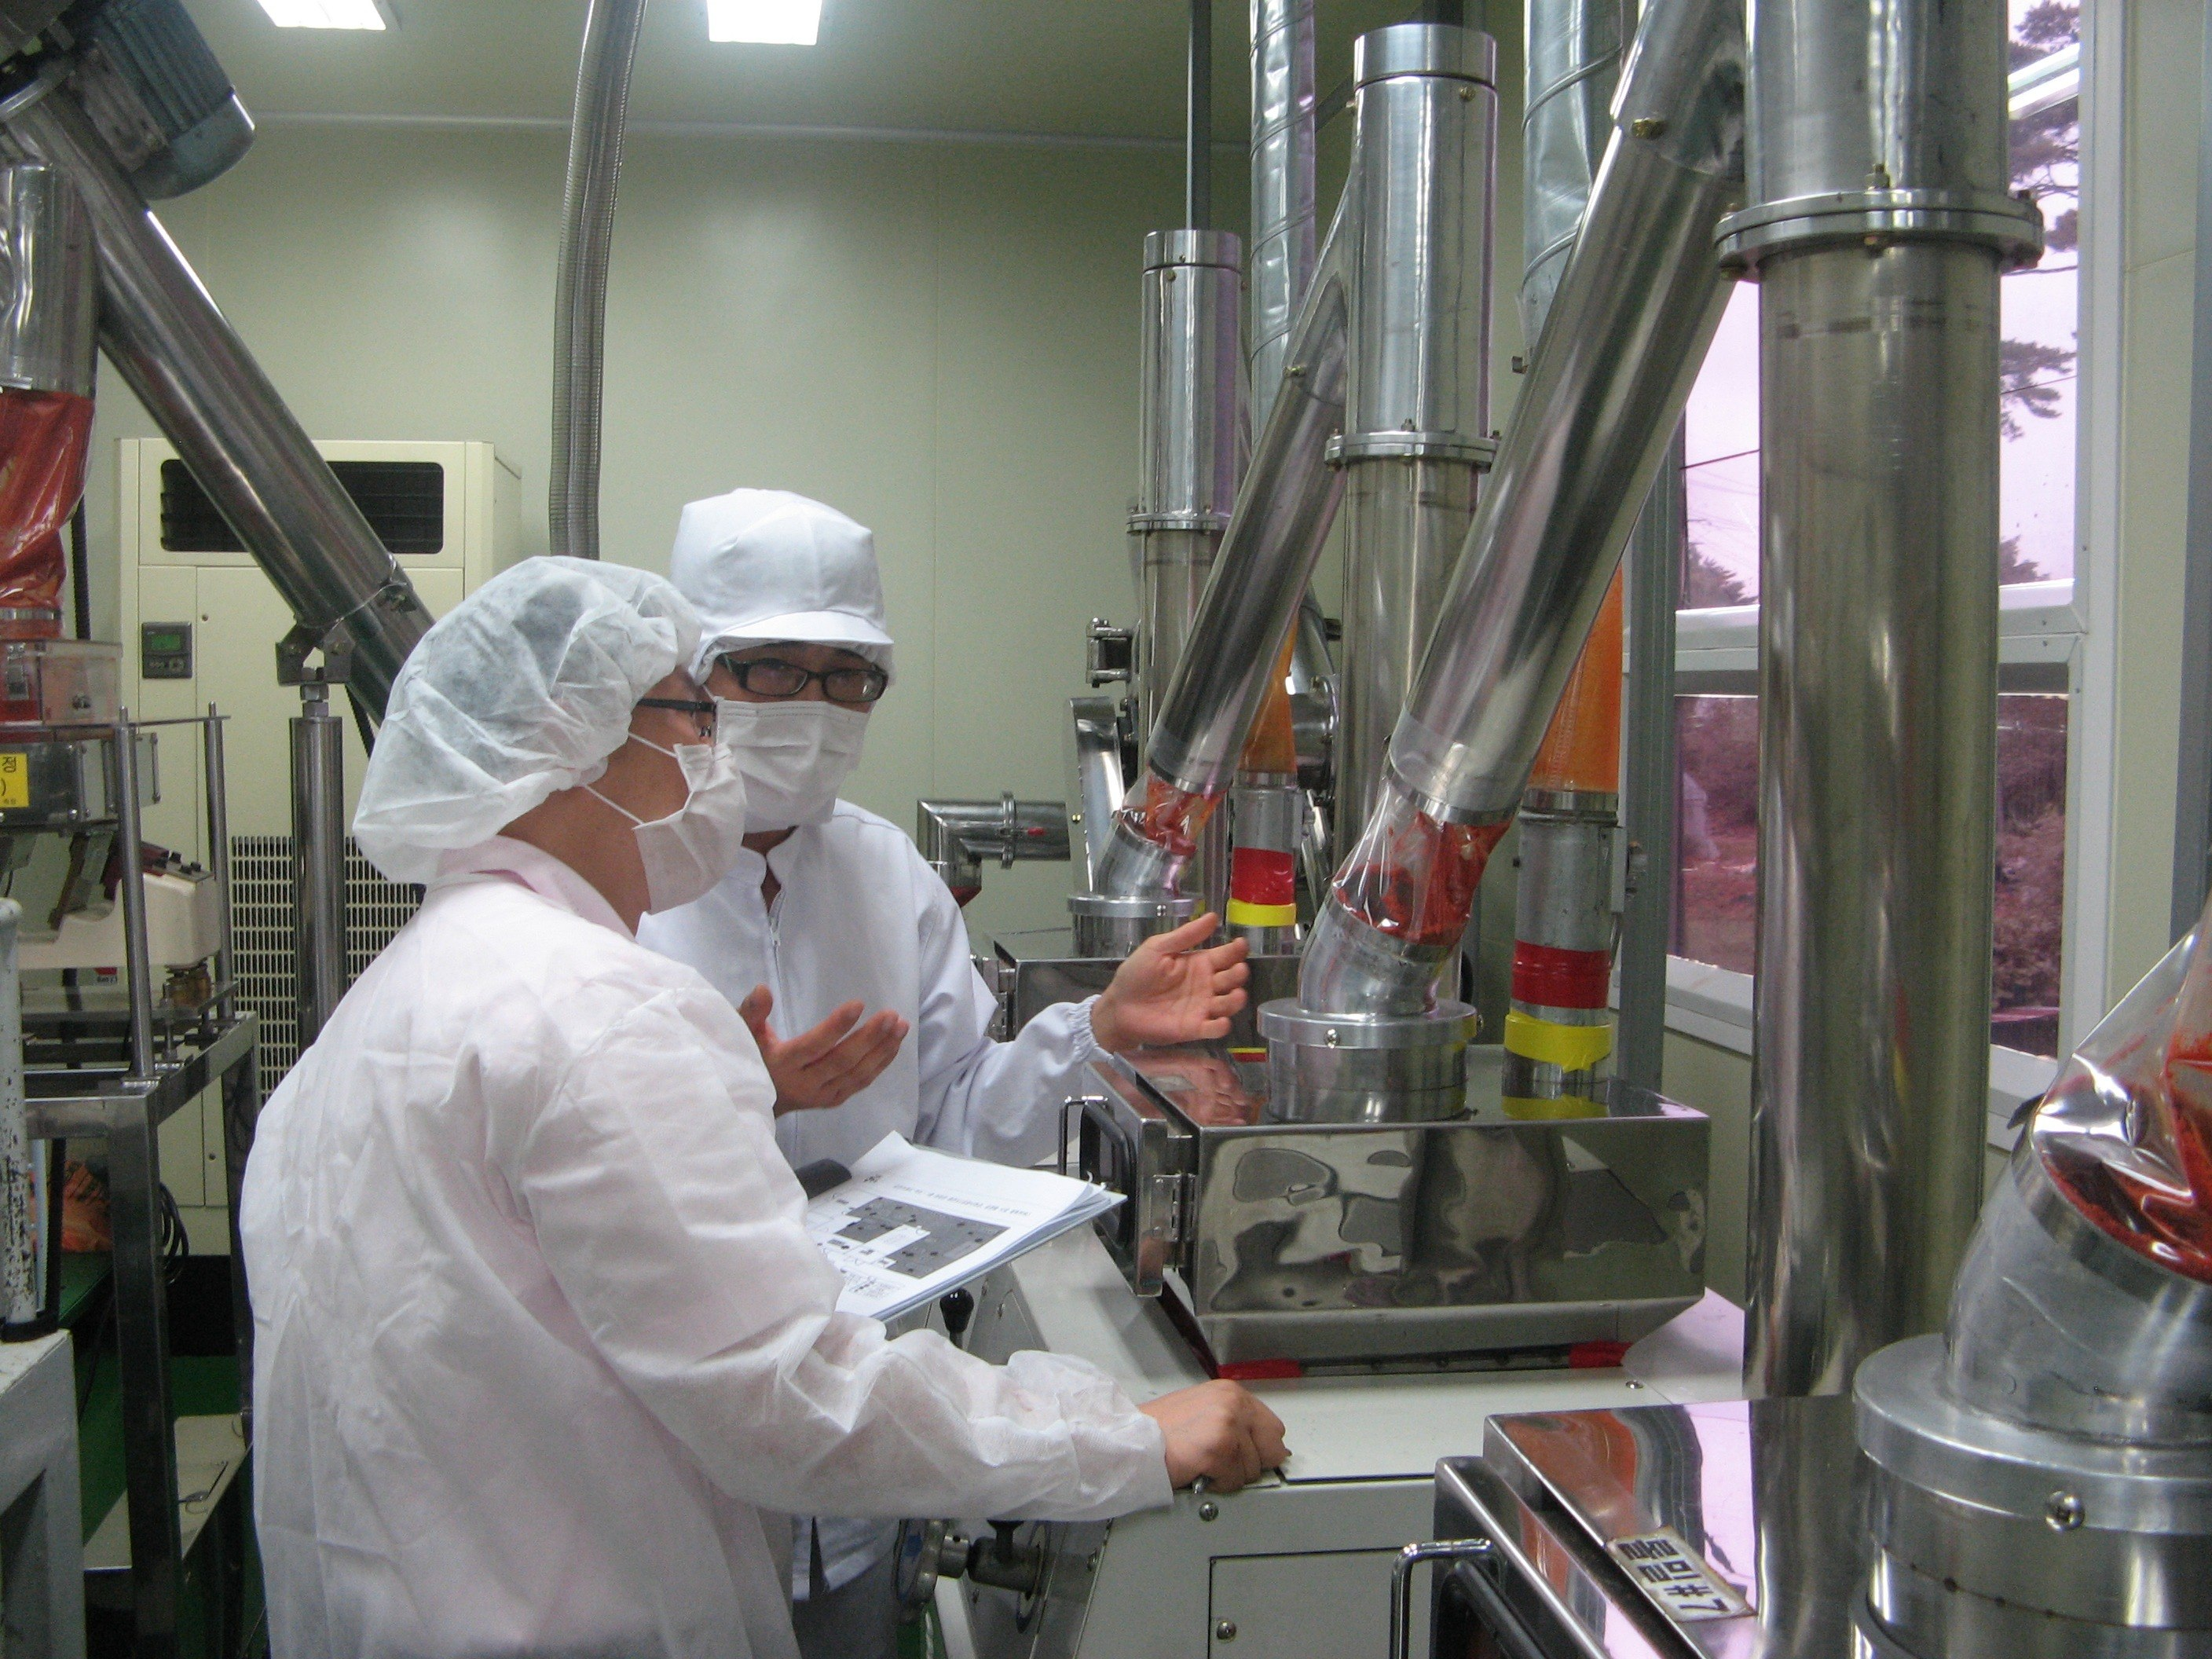 Food equipment cleaning validation is crucial in organic food factories